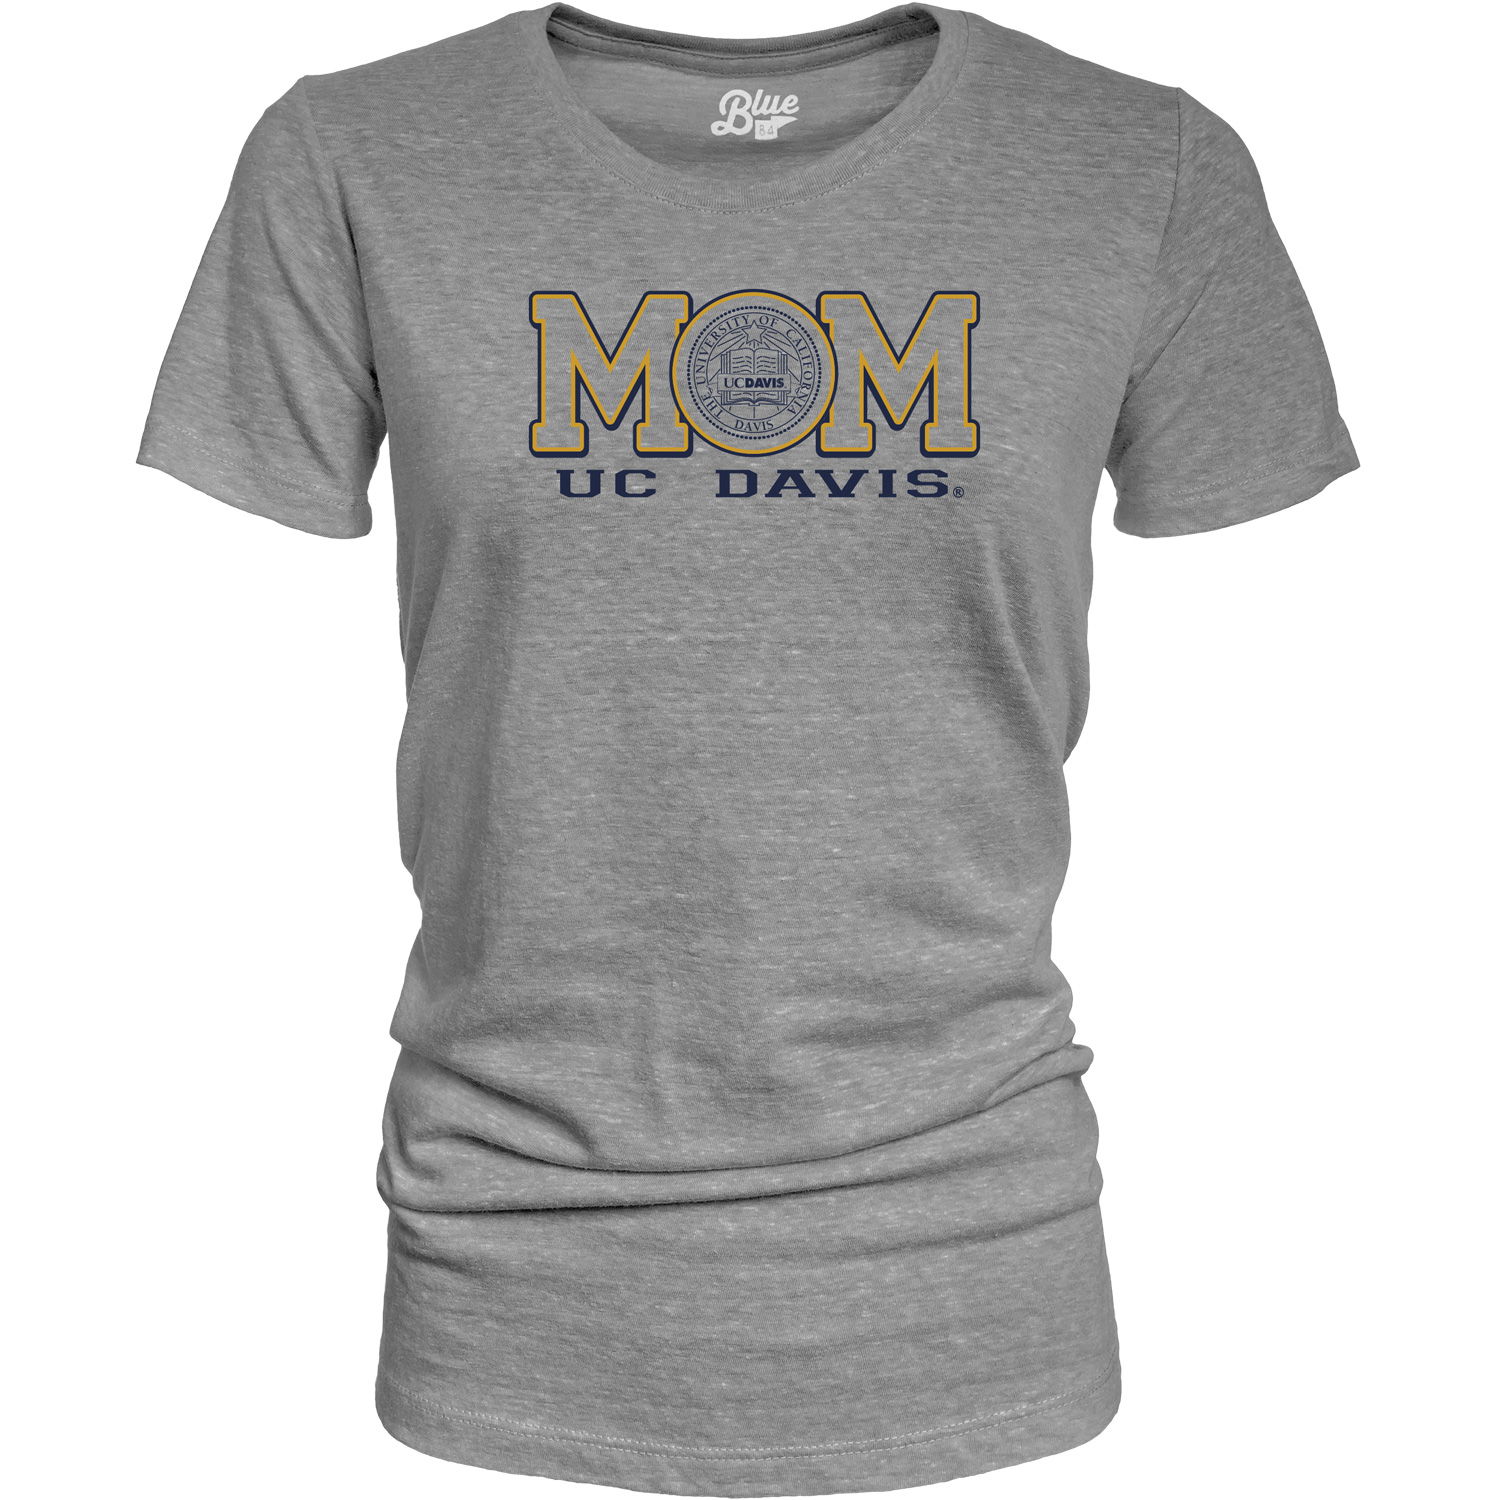 Cover Image For Blue 84 UC Davis Mom with School Seal Graphite